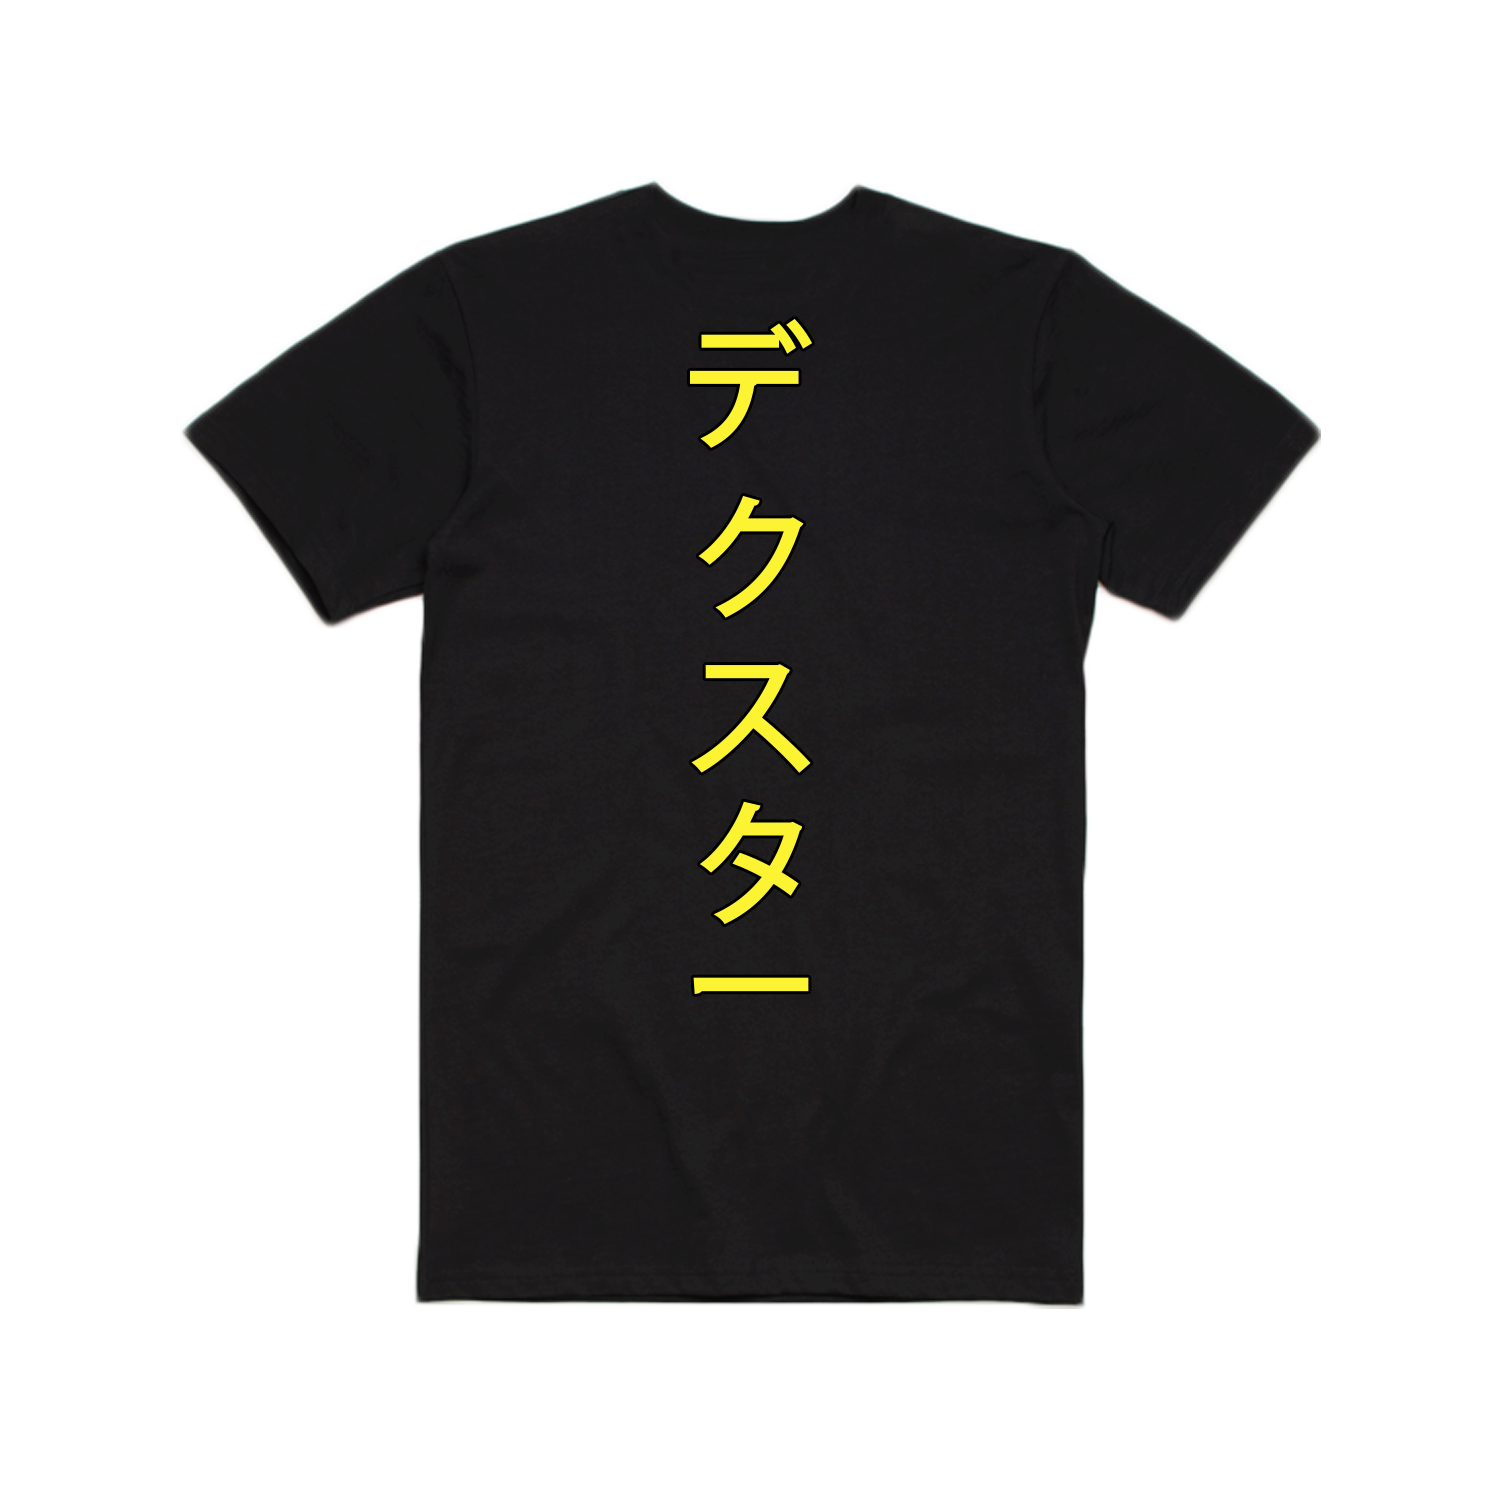 Dexter in Japan T-shirt - Black